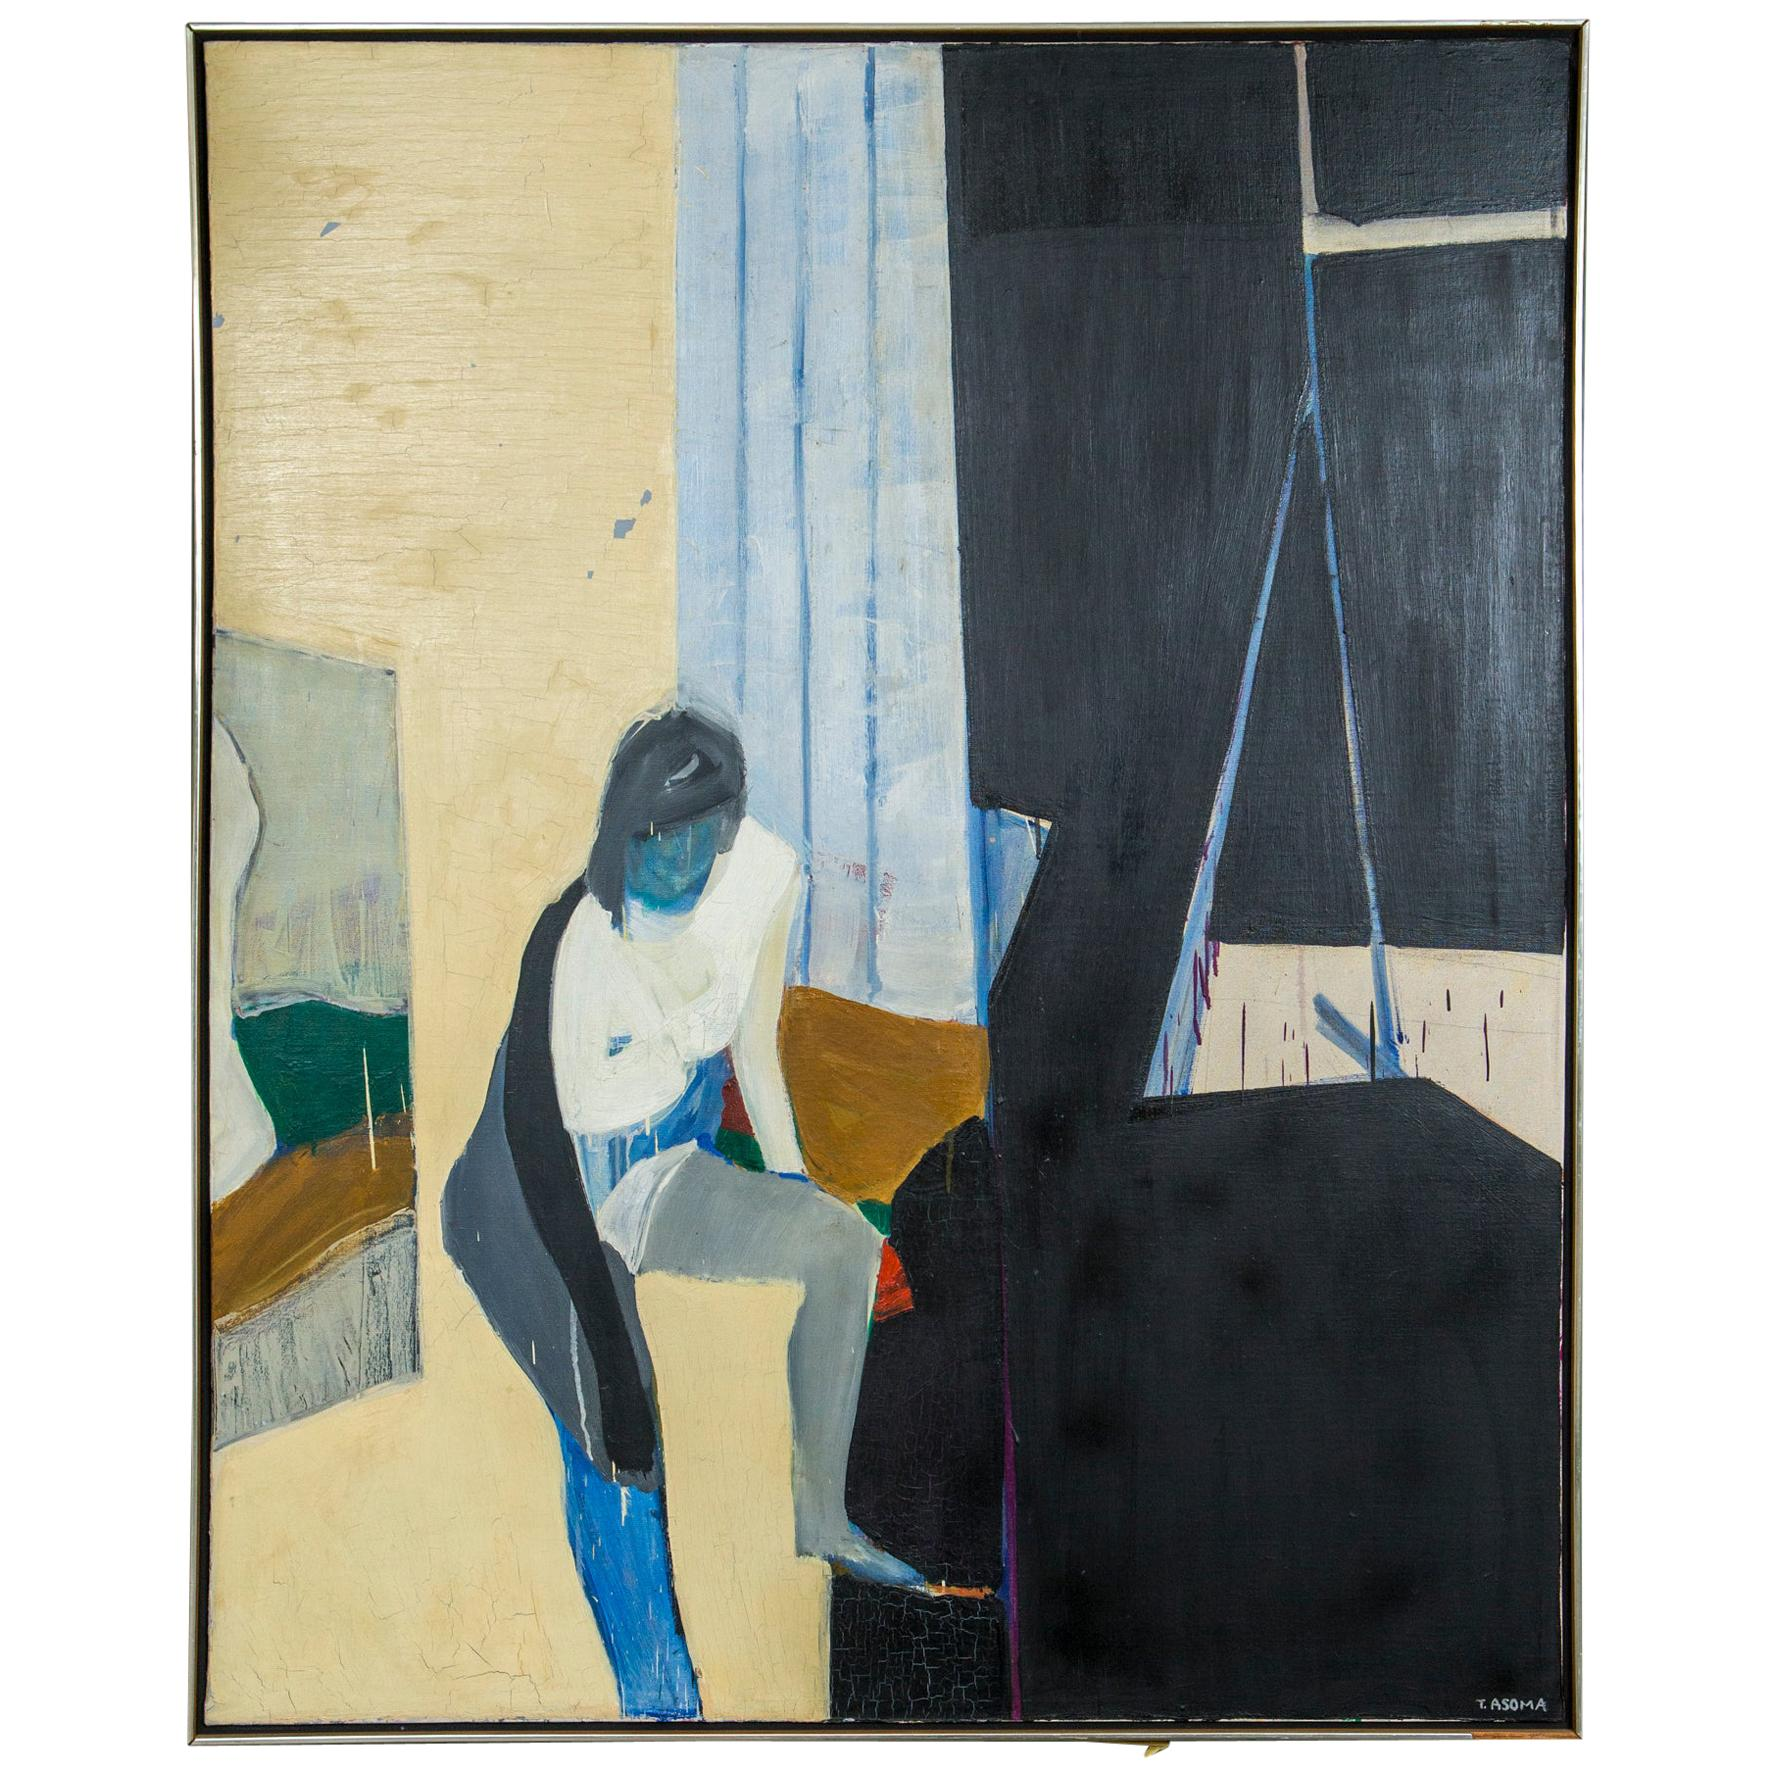 Tadashi Asoma Oil Painting of a Woman, 1960s